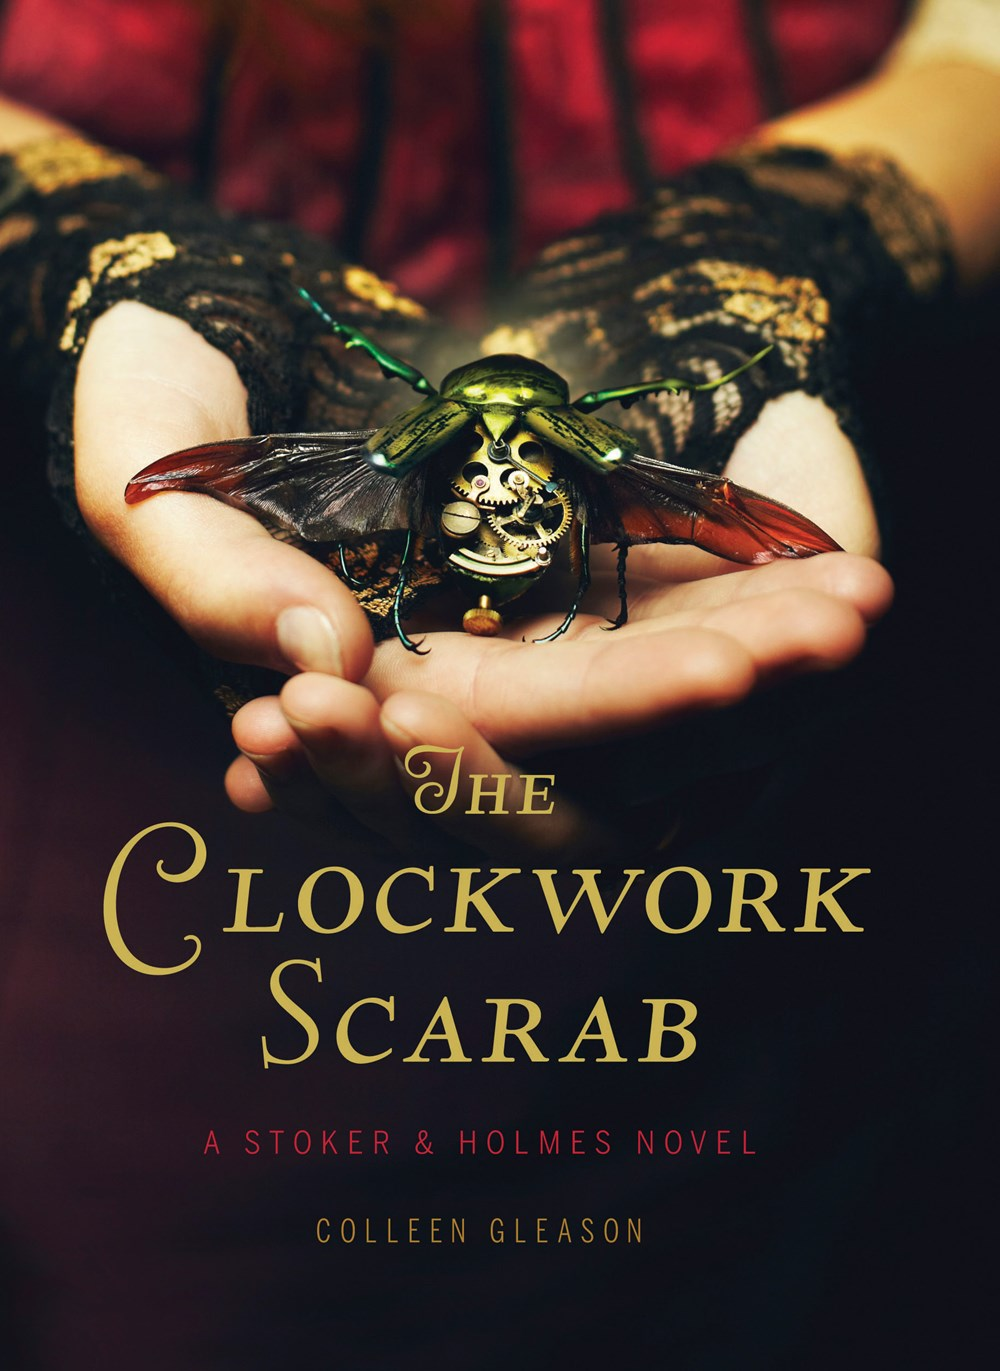 The Clockwork Scarab by Colleen Gleason Book Cover.jpg